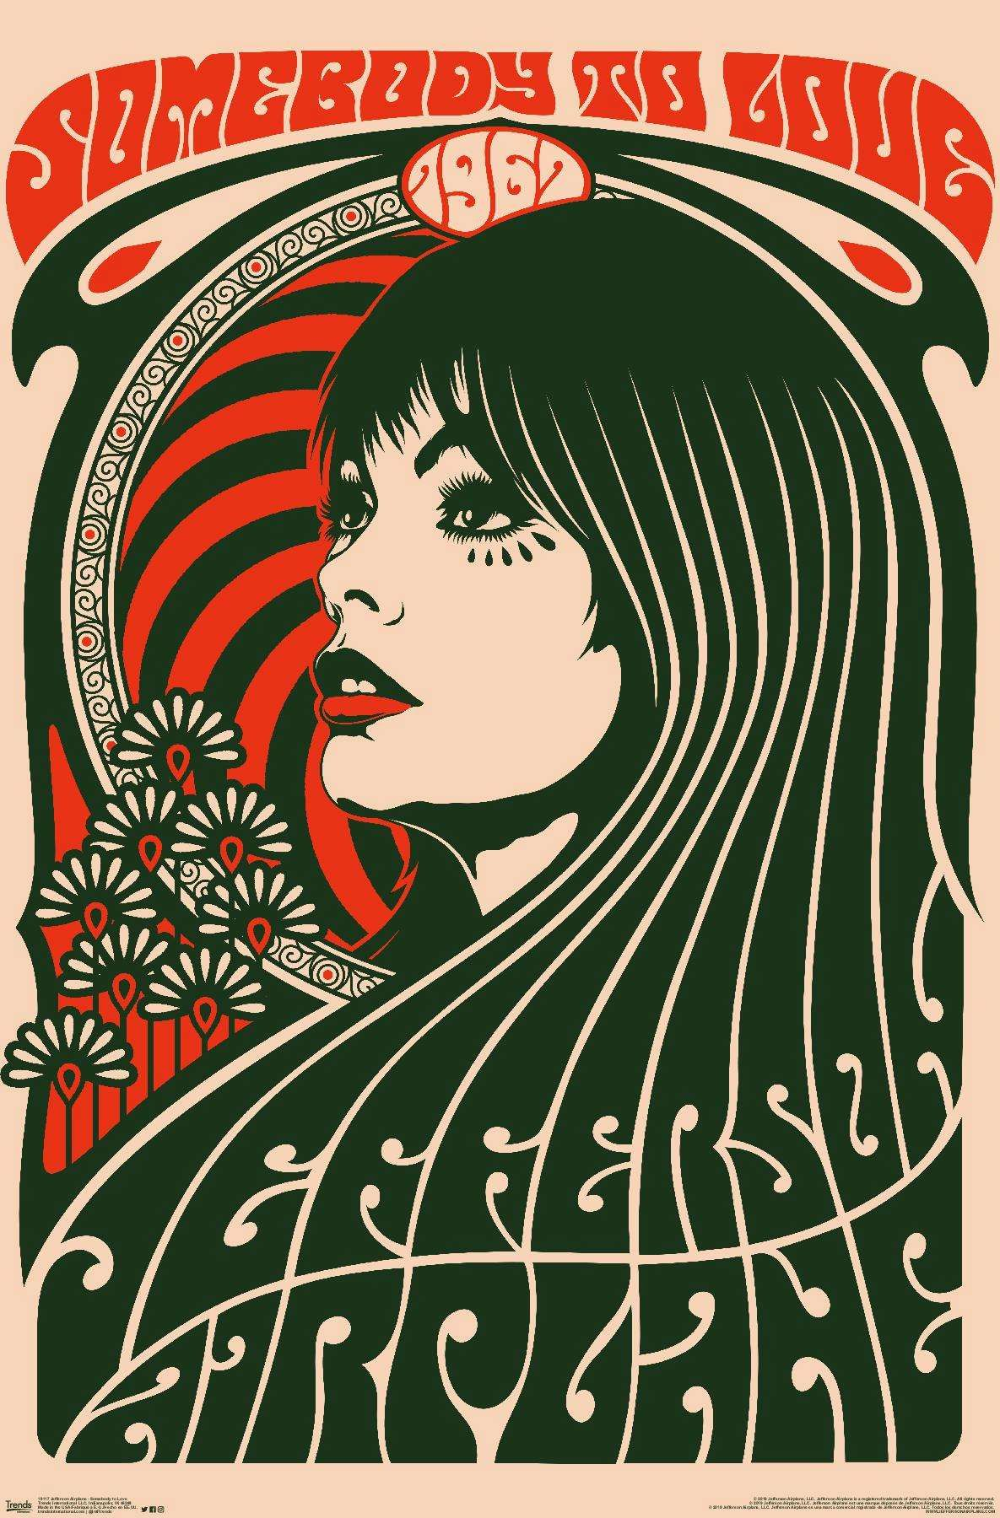 Jefferson Airplane Somebody To Love In 2020 Vintage Music Art Psychedelic Poster Vintage Music Posters